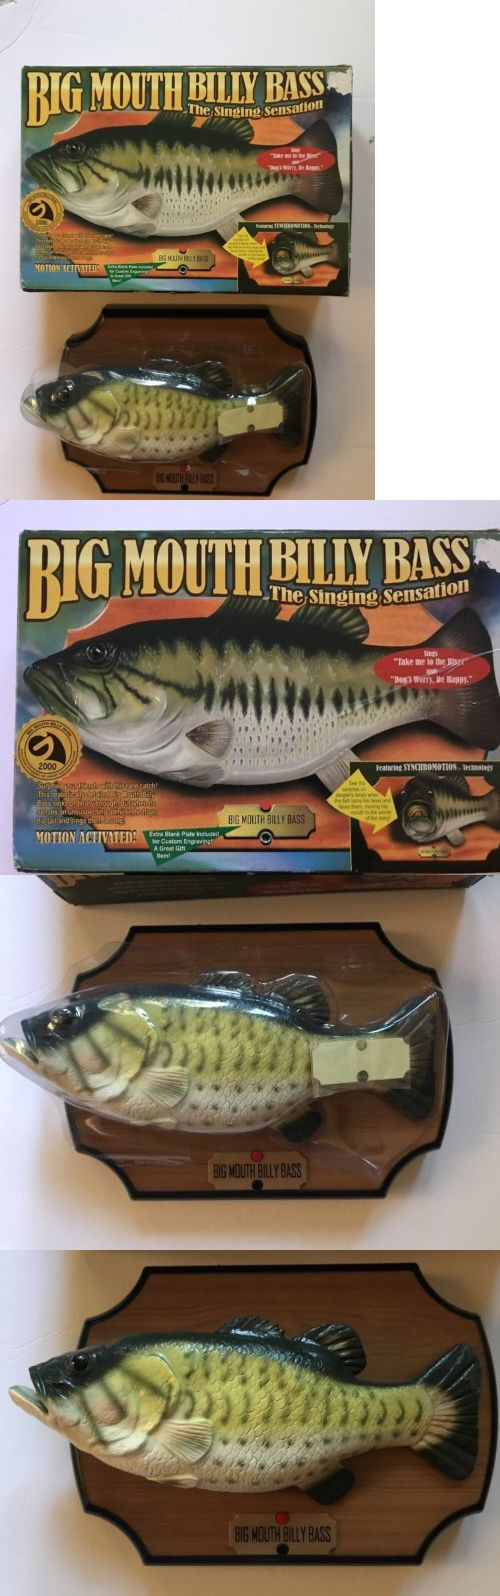 Novelties and Gifts 62143: Big Mouth Billy Bass Nib Singing Animated Fish Motion Acivated Gift Gemmy -> BUY IT NOW ONLY: $49.99 on eBay!